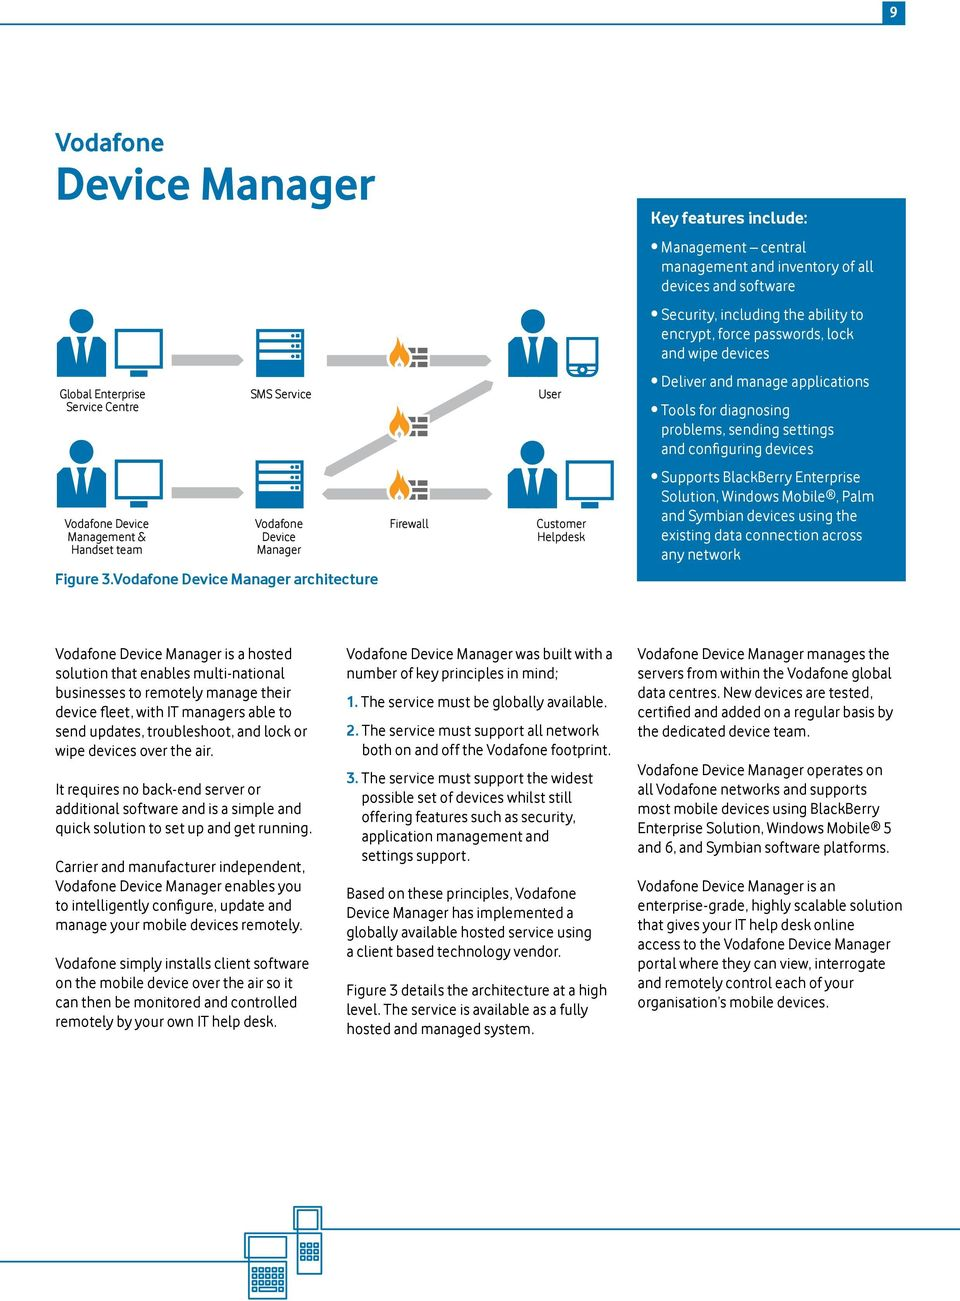 team Vodafone Device Manager Firewall Customer Helpdesk Supports BlackBerry Enterprise Solution, Windows Mobile, Palm and Symbian devices using the existing data connection across any network Figure